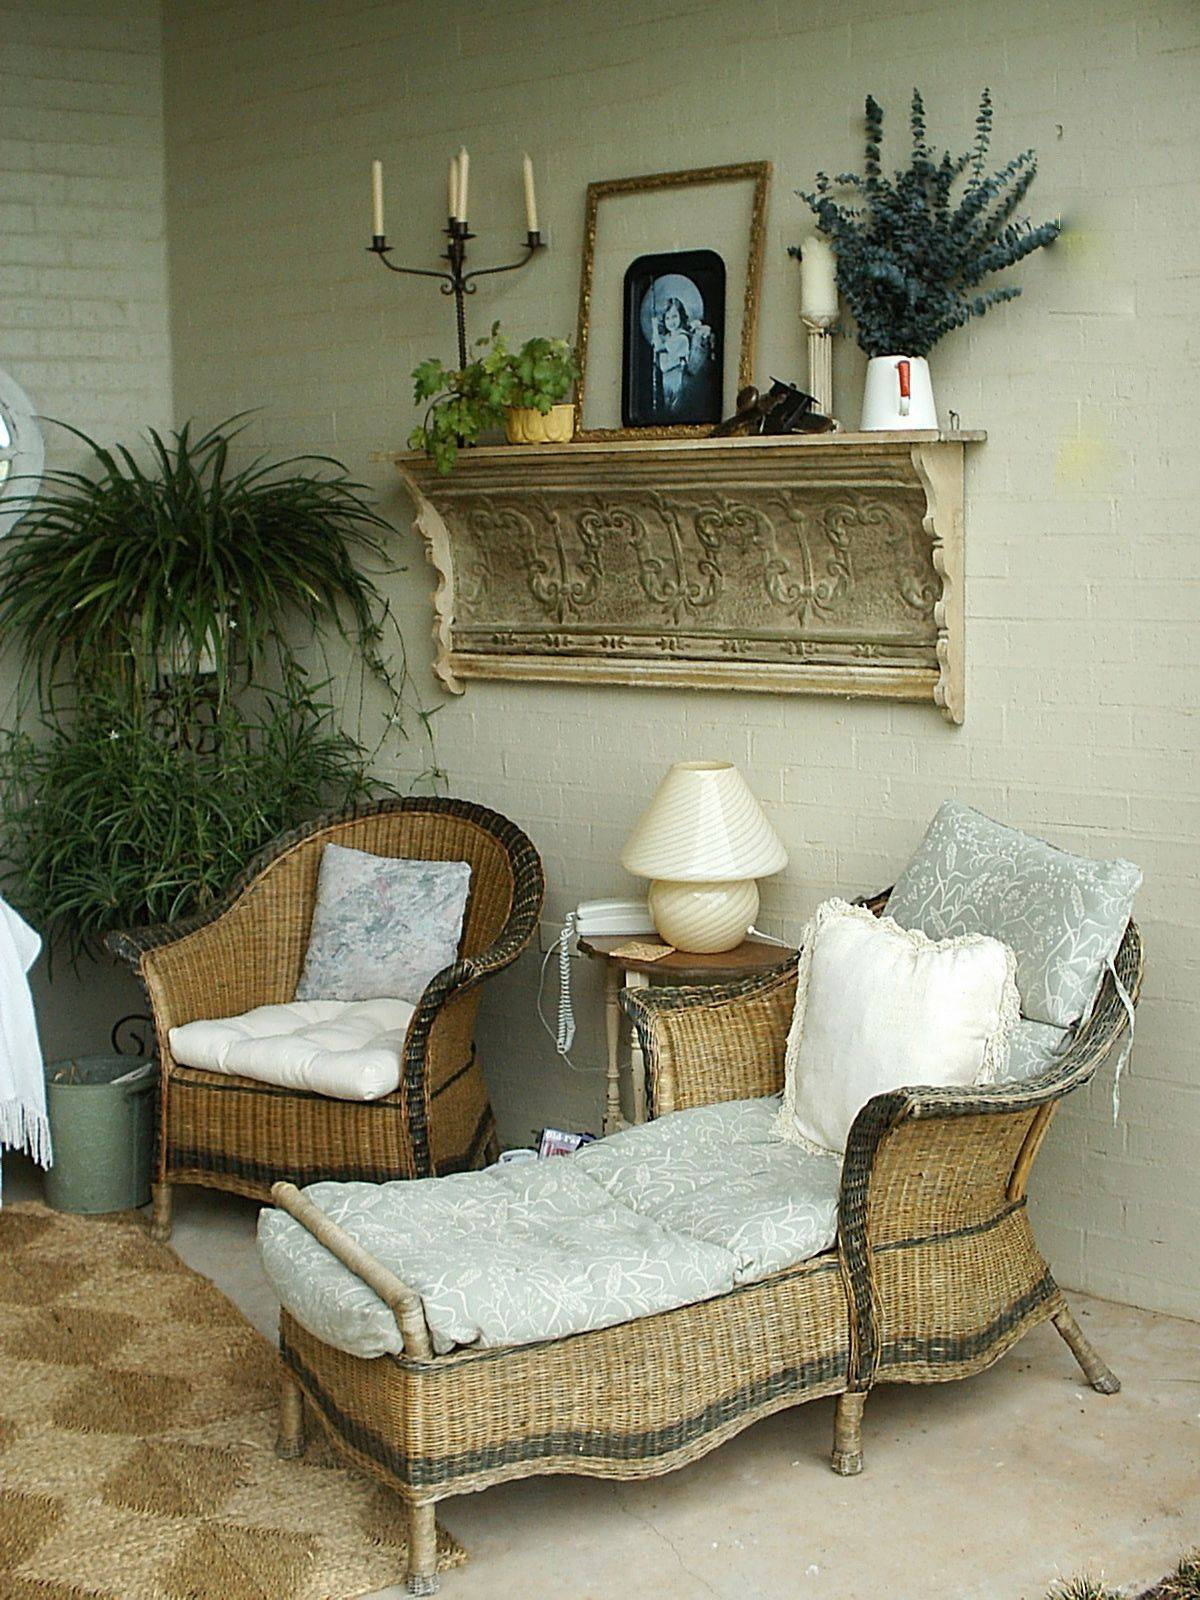 Modest shabby-chic porch design with a dash of eclectic charm thrown into the mix